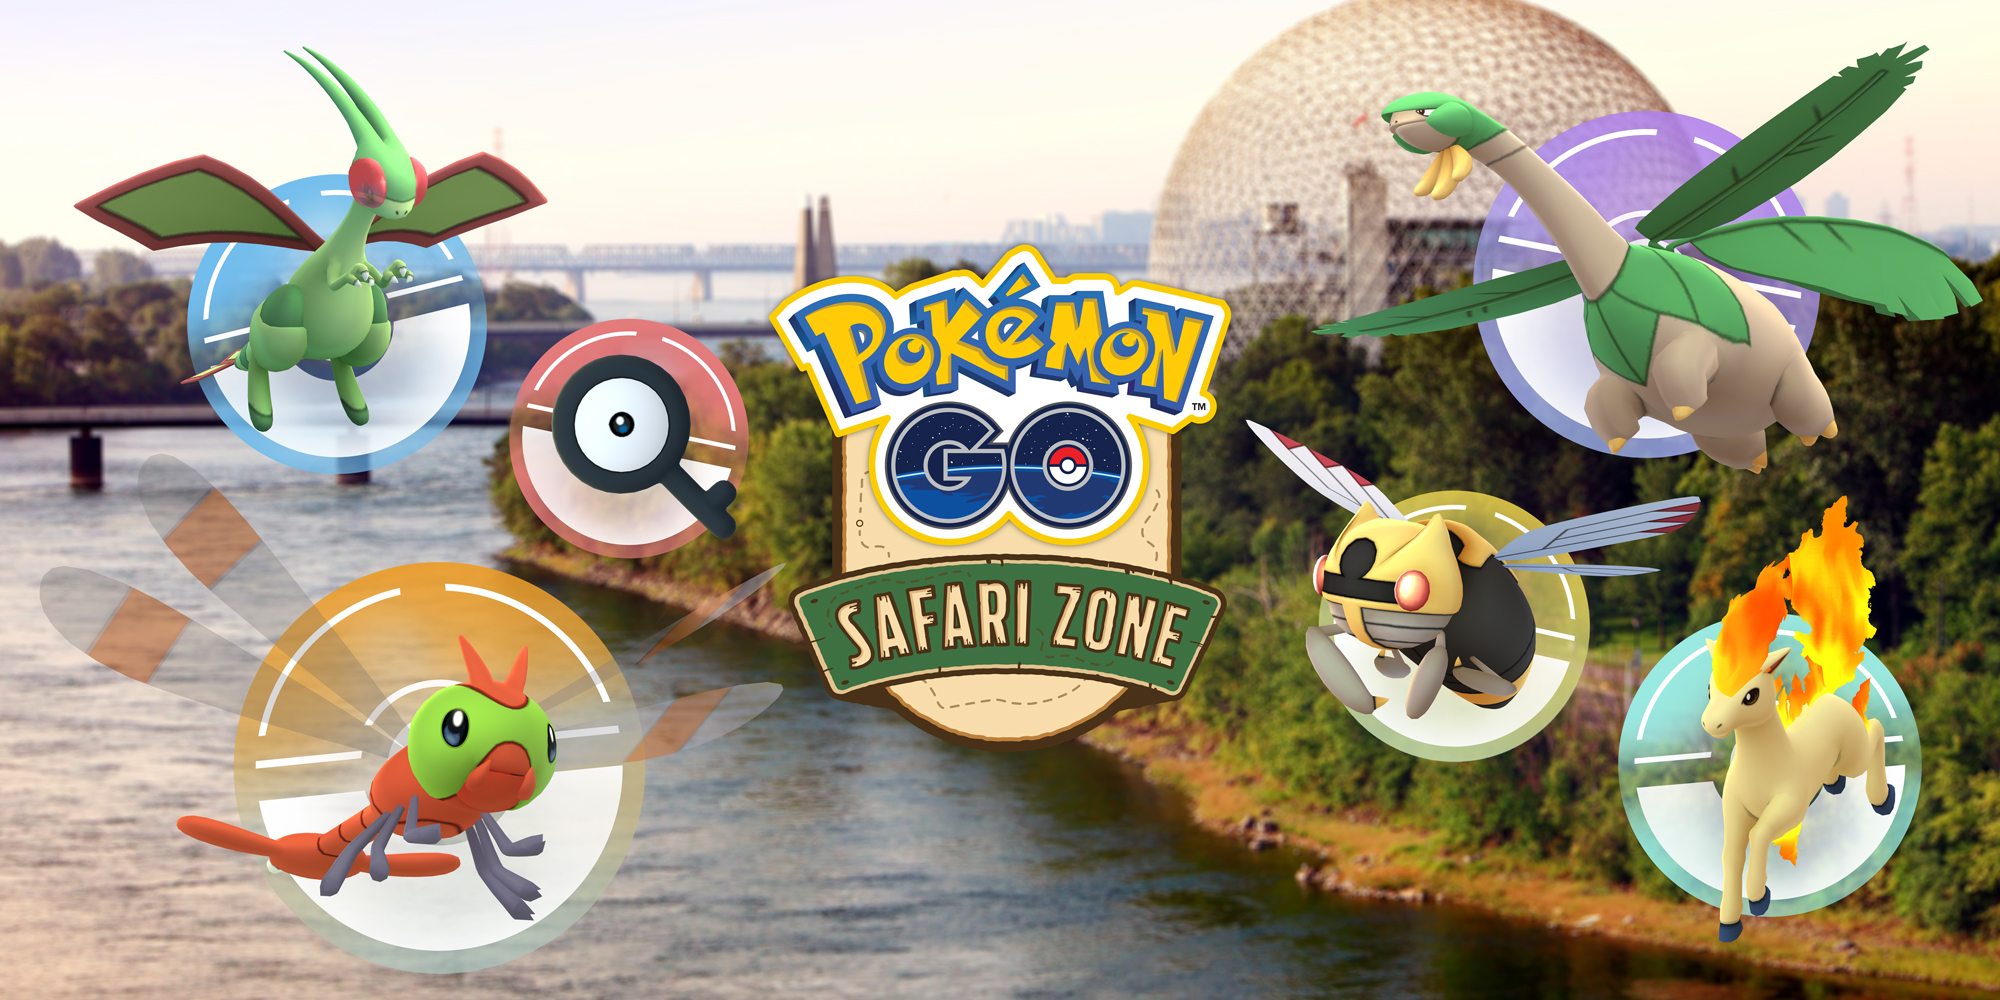 Next Pokémon GO Safari Zone Event to be Held in Montreal in September